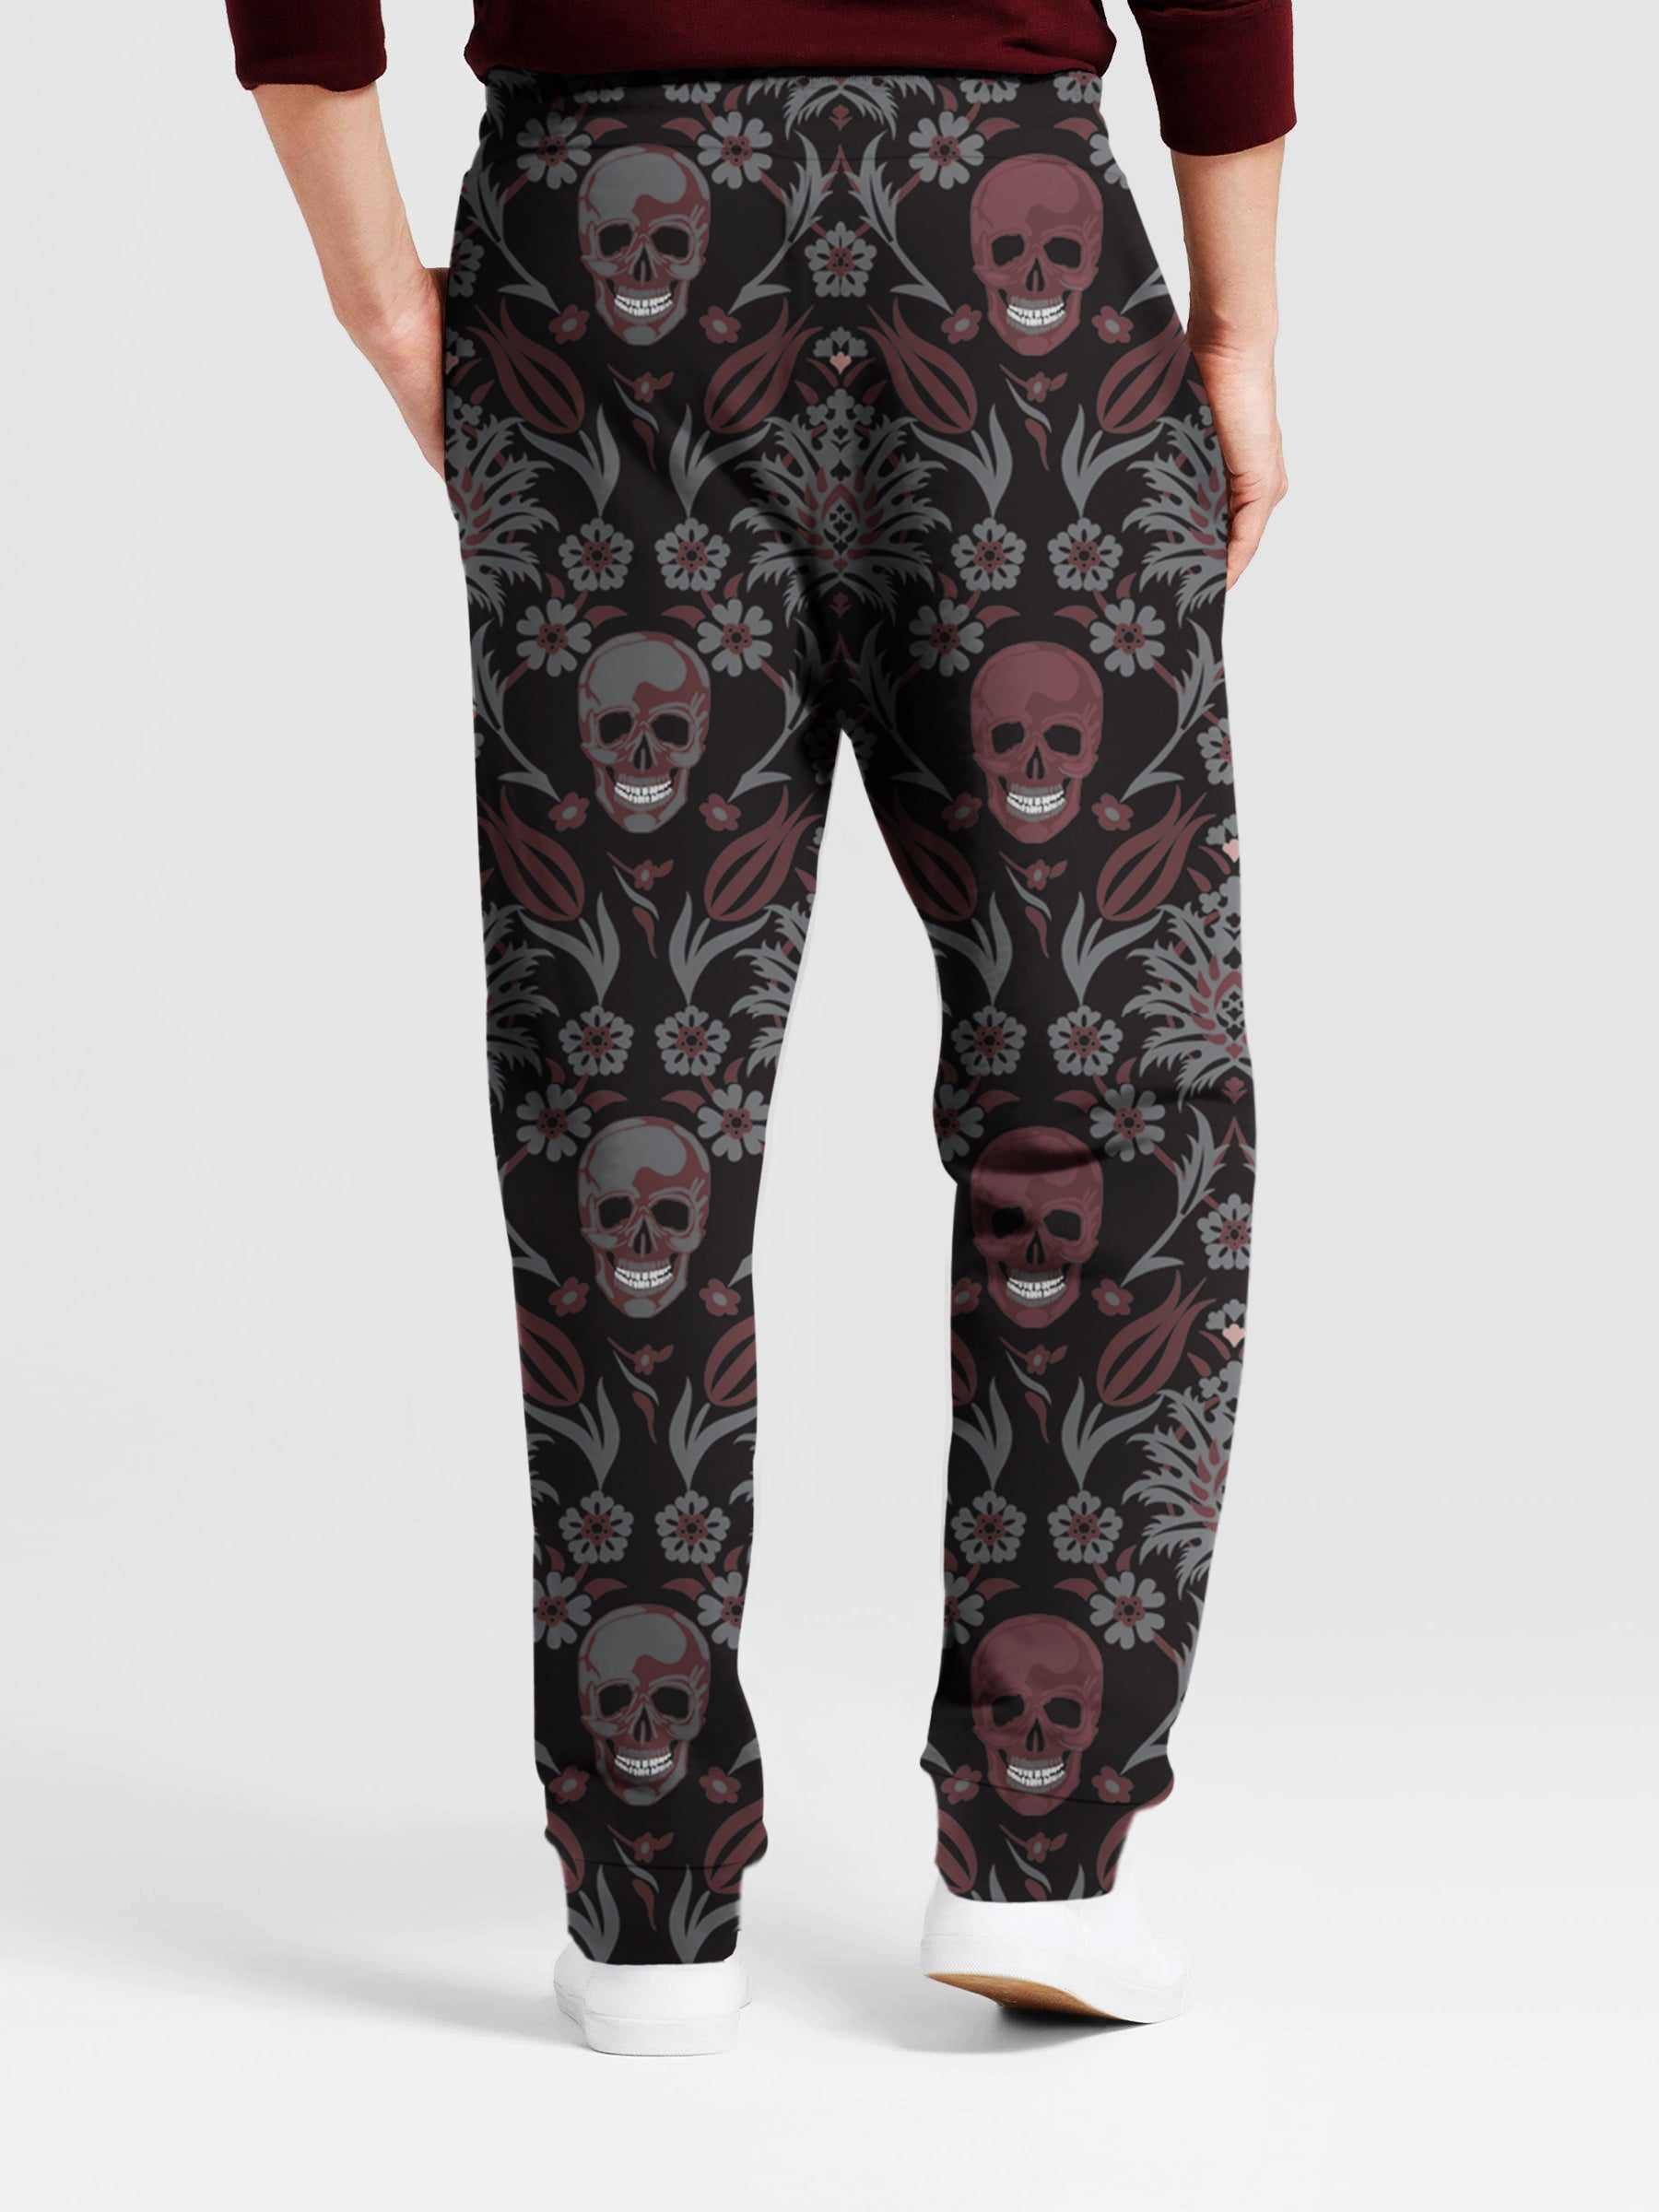 Skull Art 3D Pants 03 - designfullprint